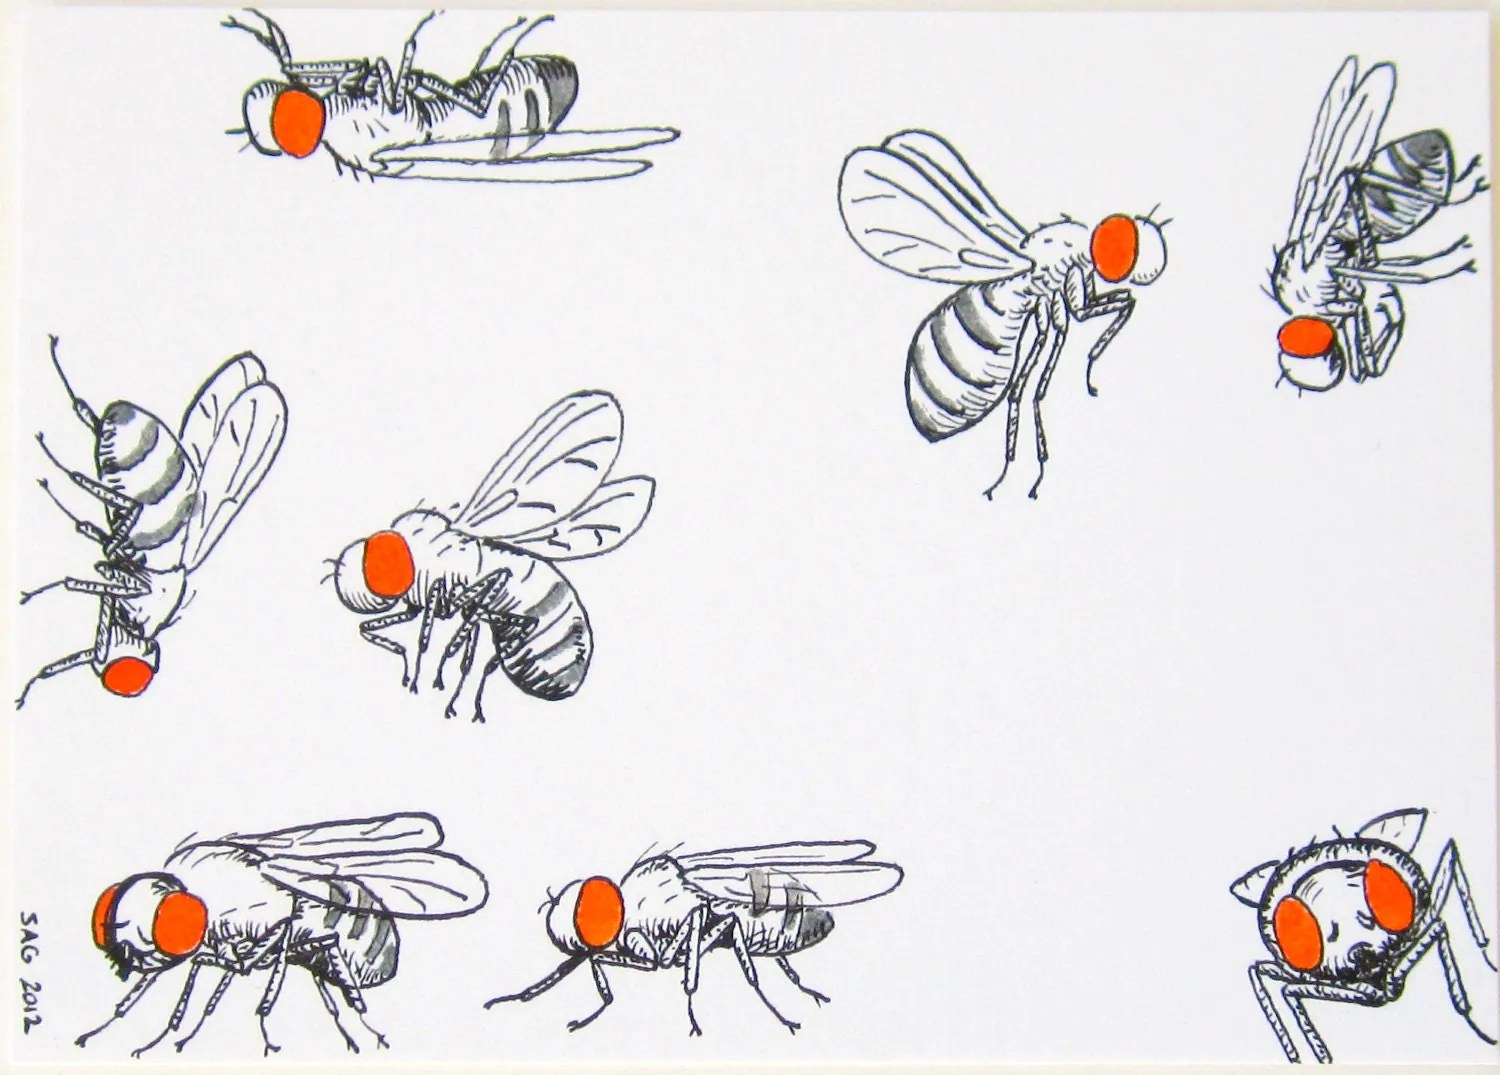 Aceo Drosophila Go About Their Business Archival Print